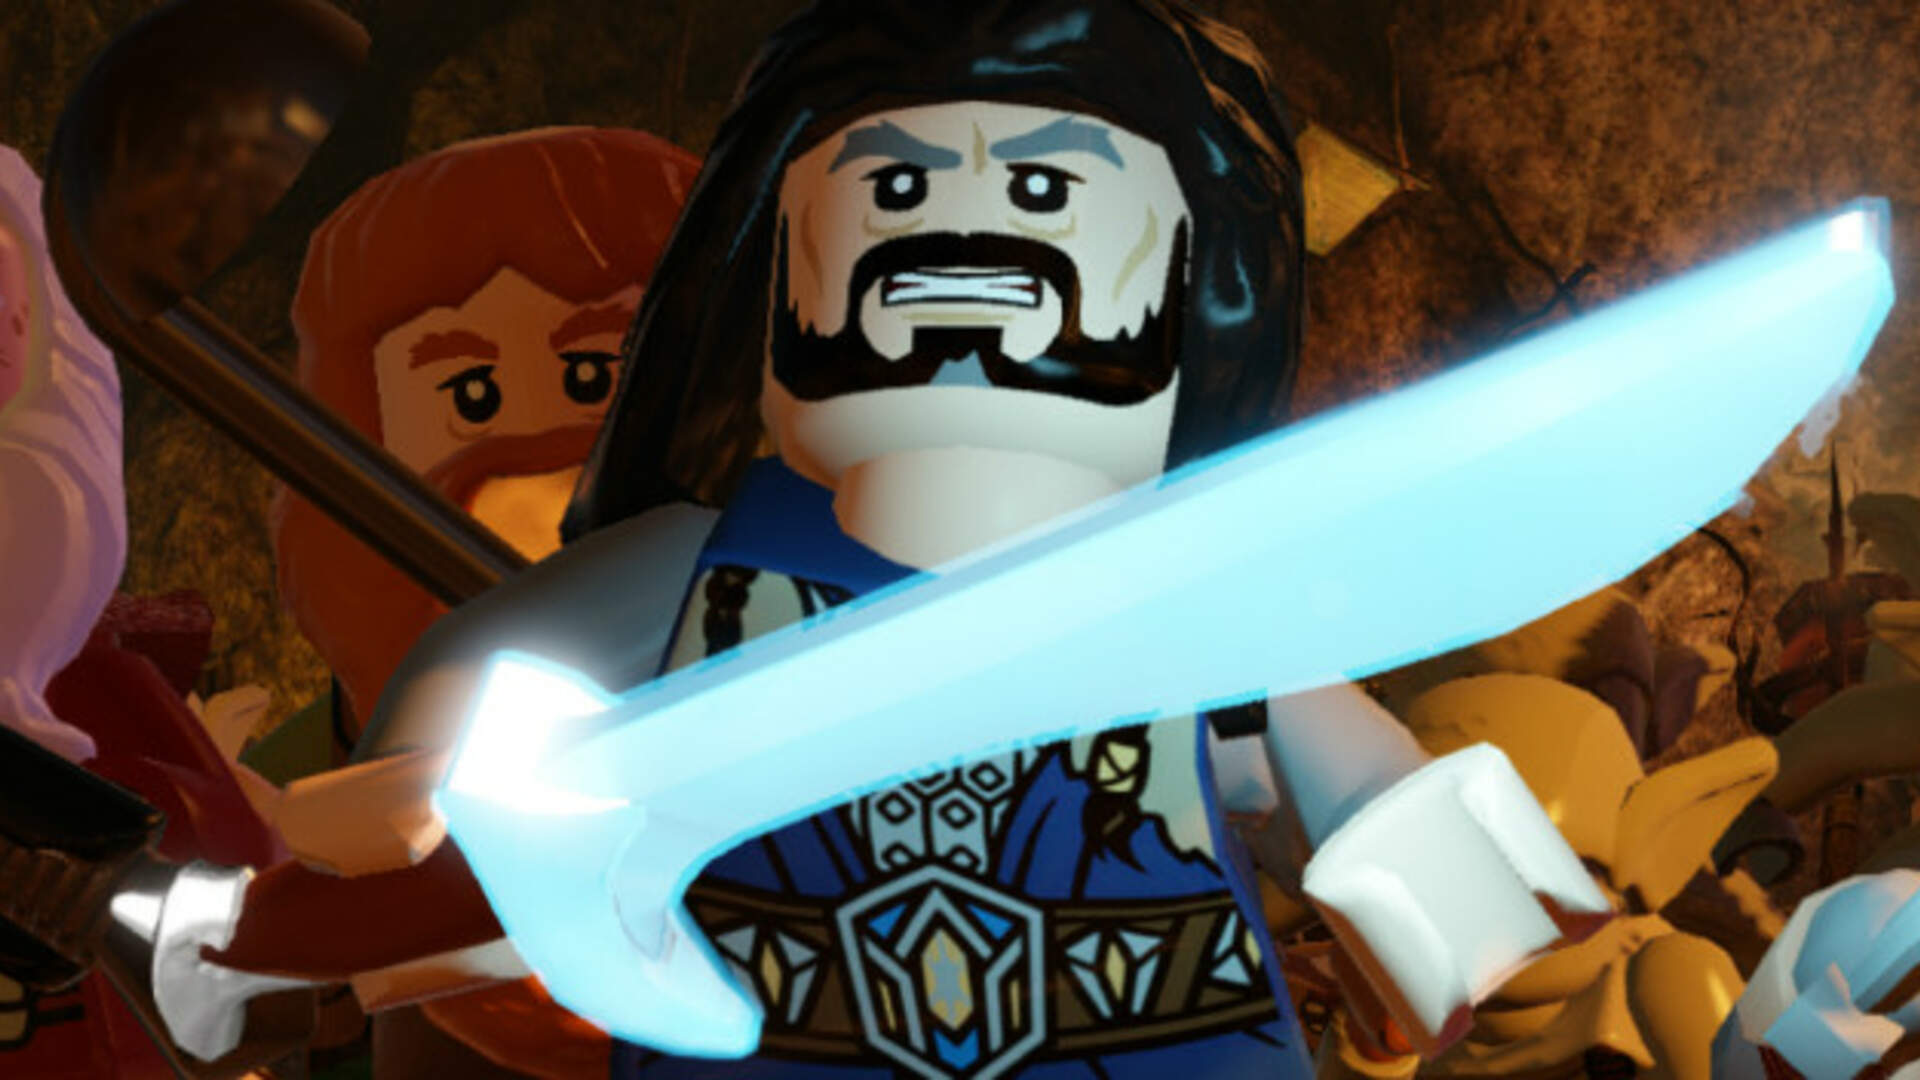 Lego The Hobbit PS4 Review: All These Dwarves Look the Same